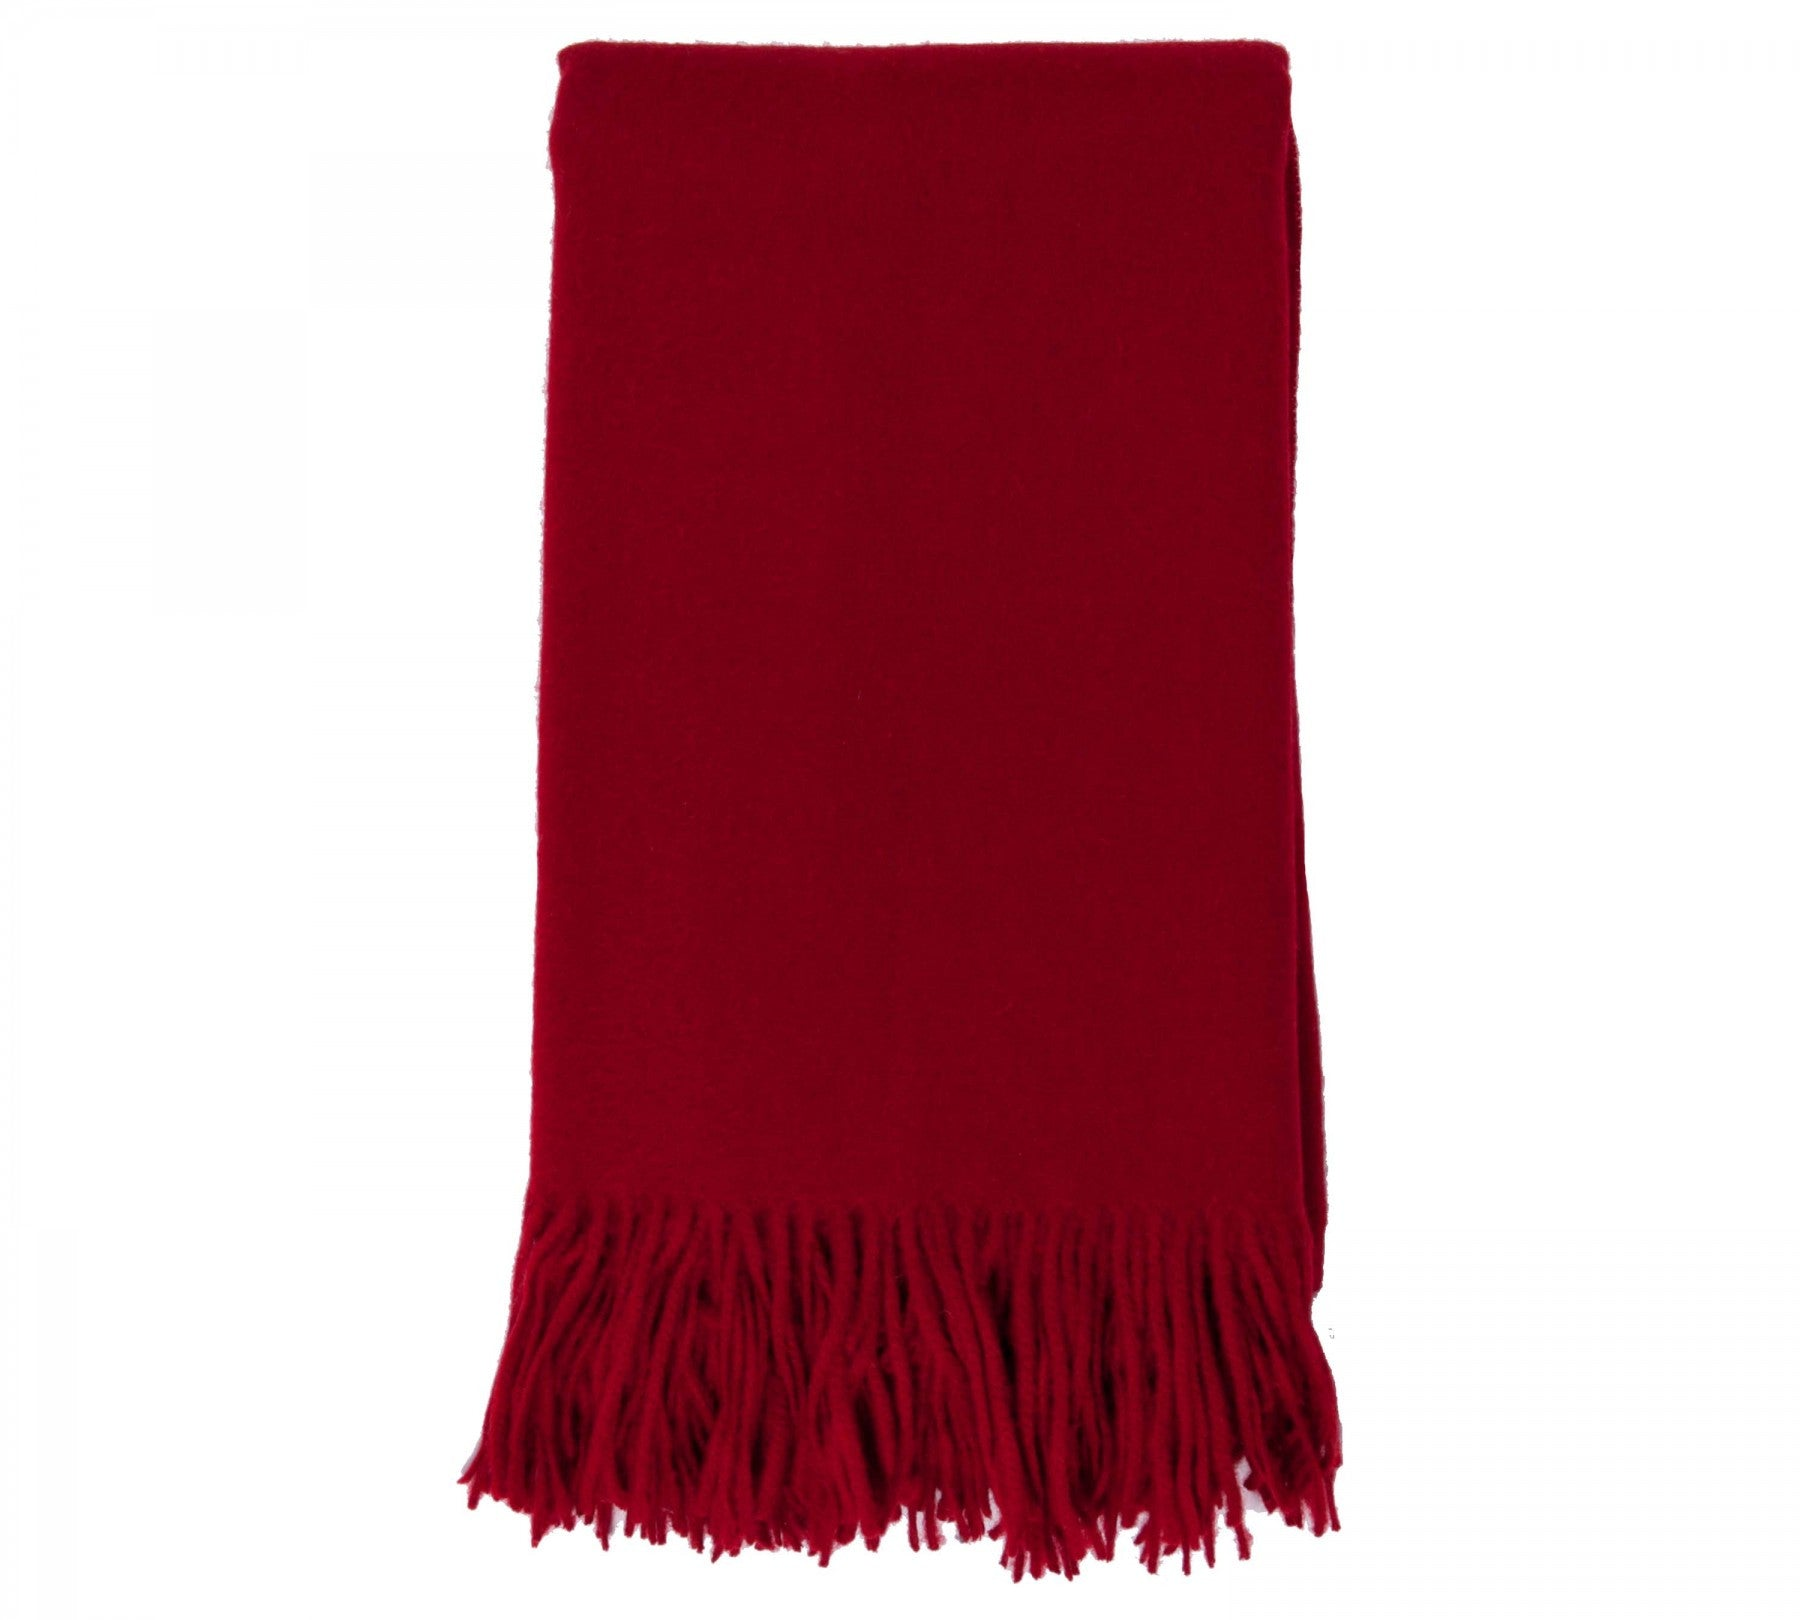 Alashan Merino / Cashmere Plain Weave Throw - Claret